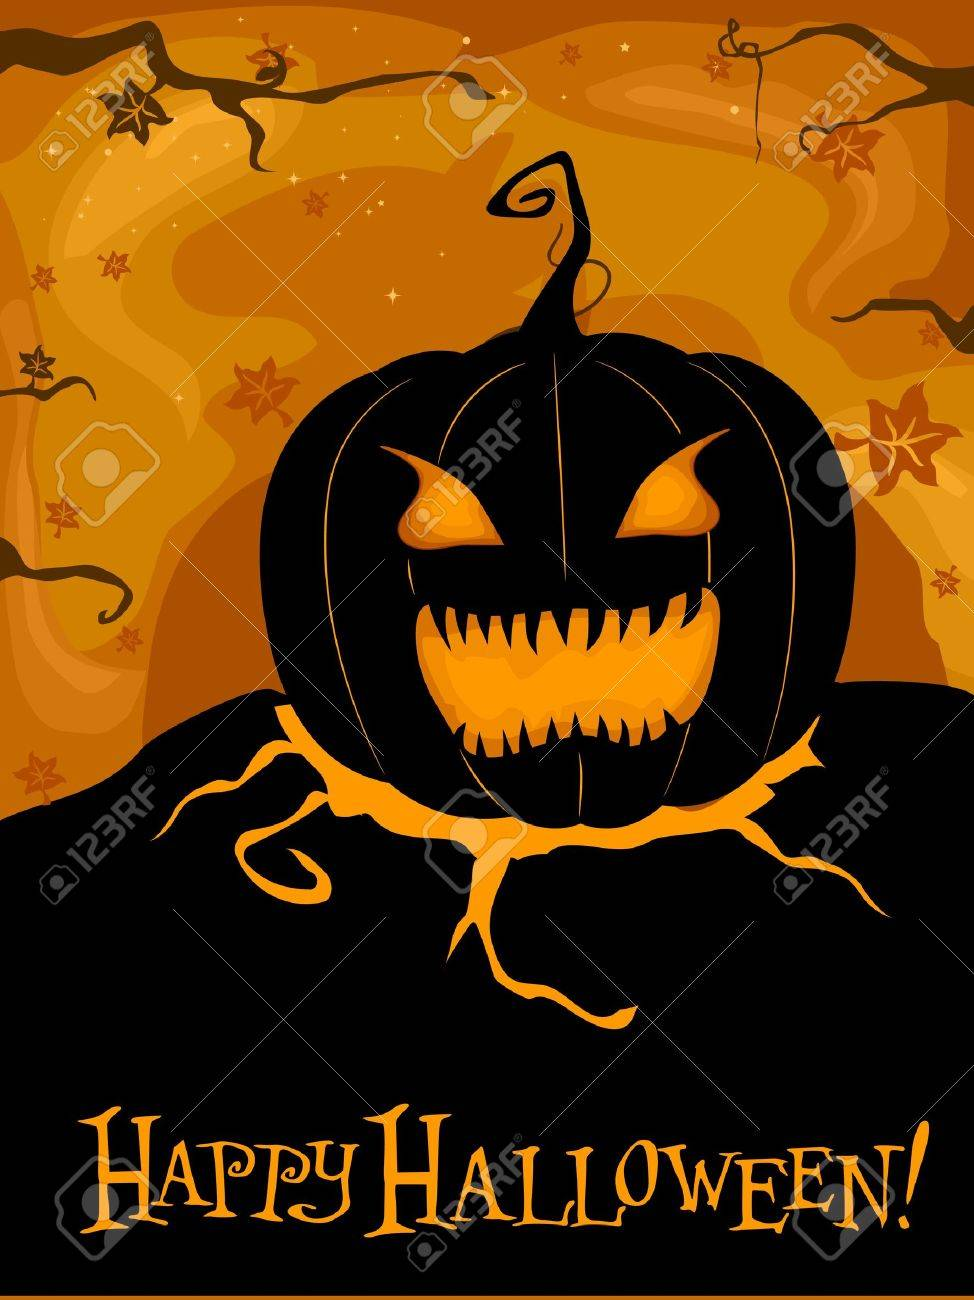 Halloween-themed Design Featuring a Creepy Jack-o-Lantern Stock Photo - 8141029